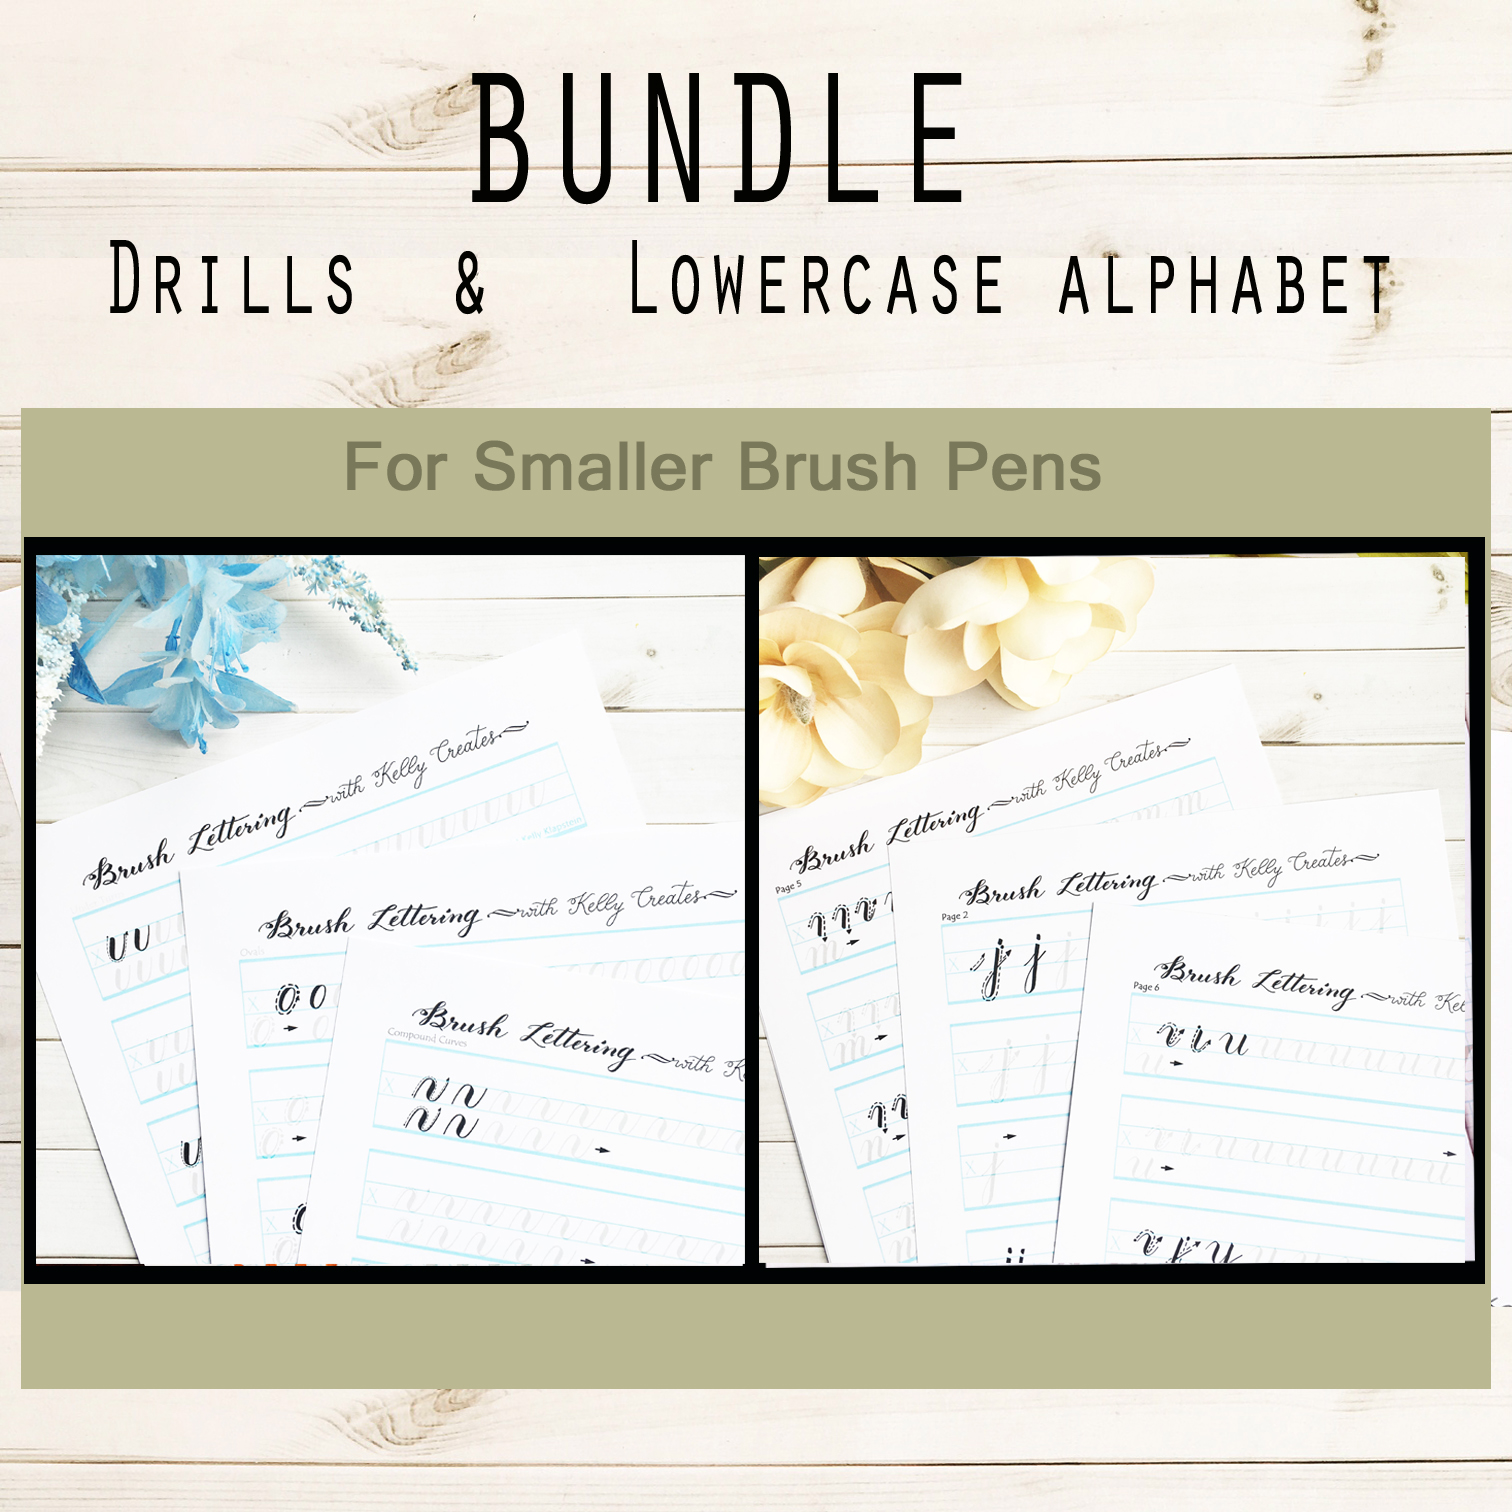 Bundle 2 Drills Amp Lowercase Alphabet For Small Brush Pens